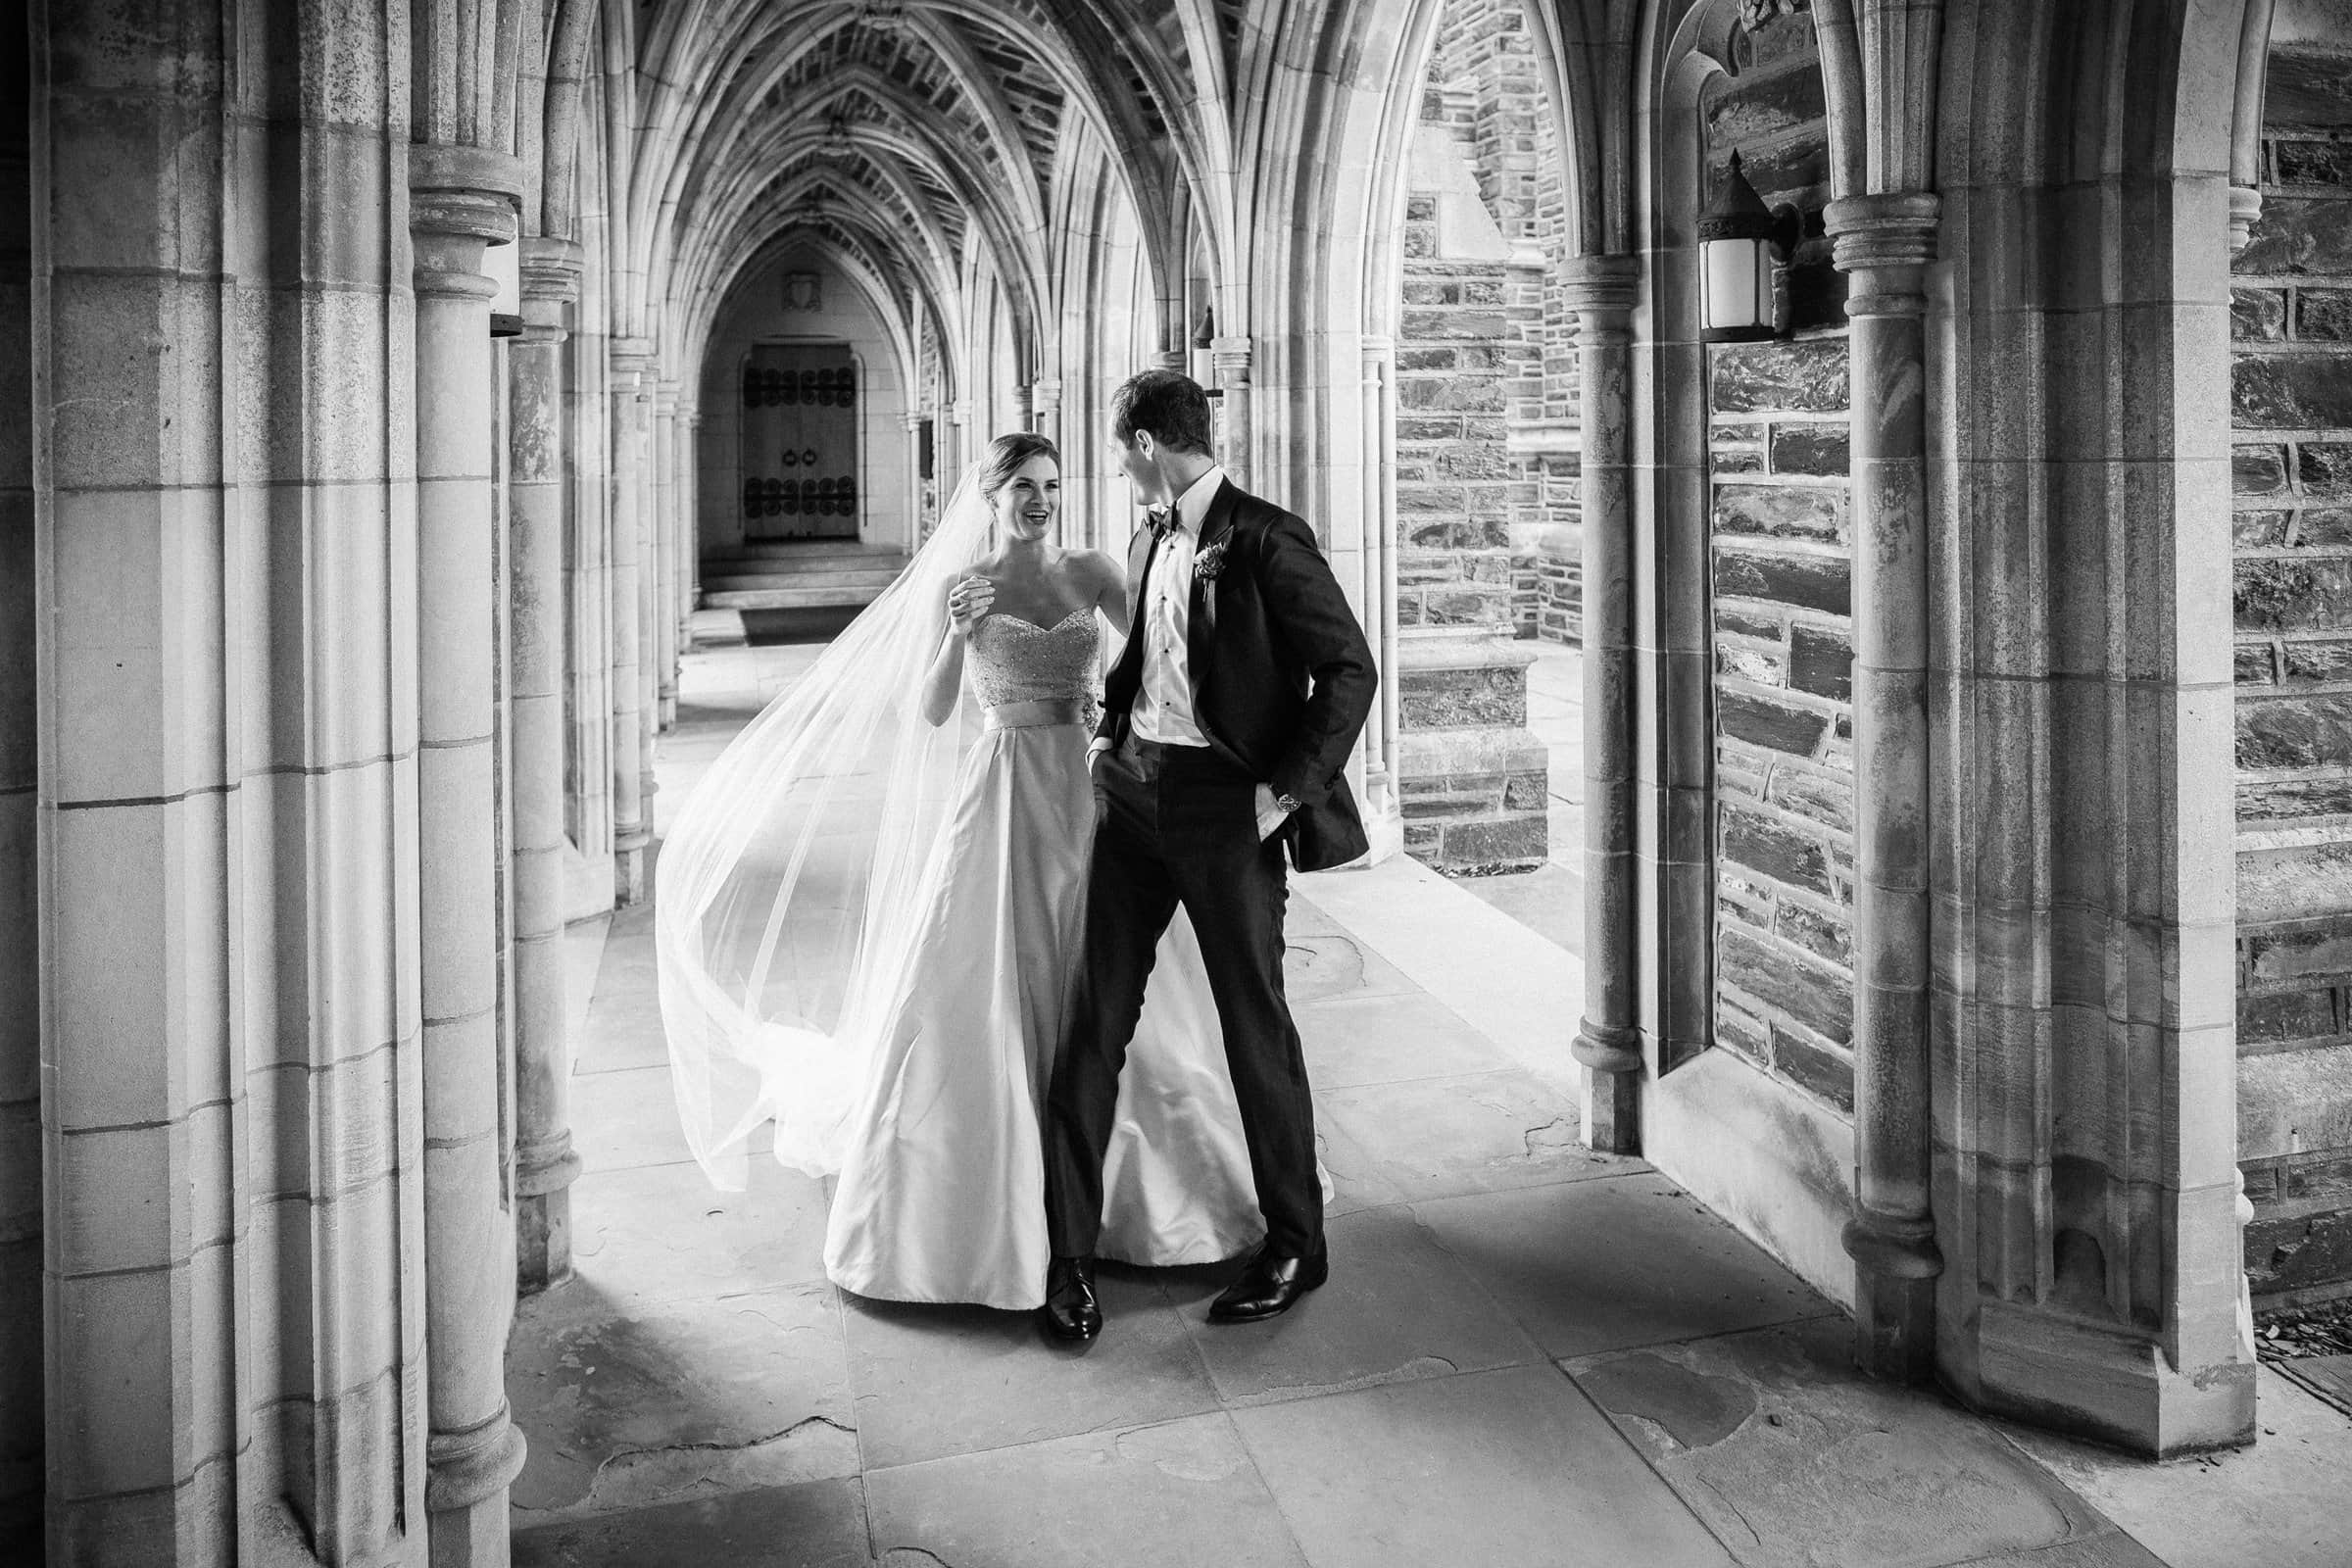 B&W Photo of First Look in Arcades at Duke Chapel Wedding by Joe Payne Photography